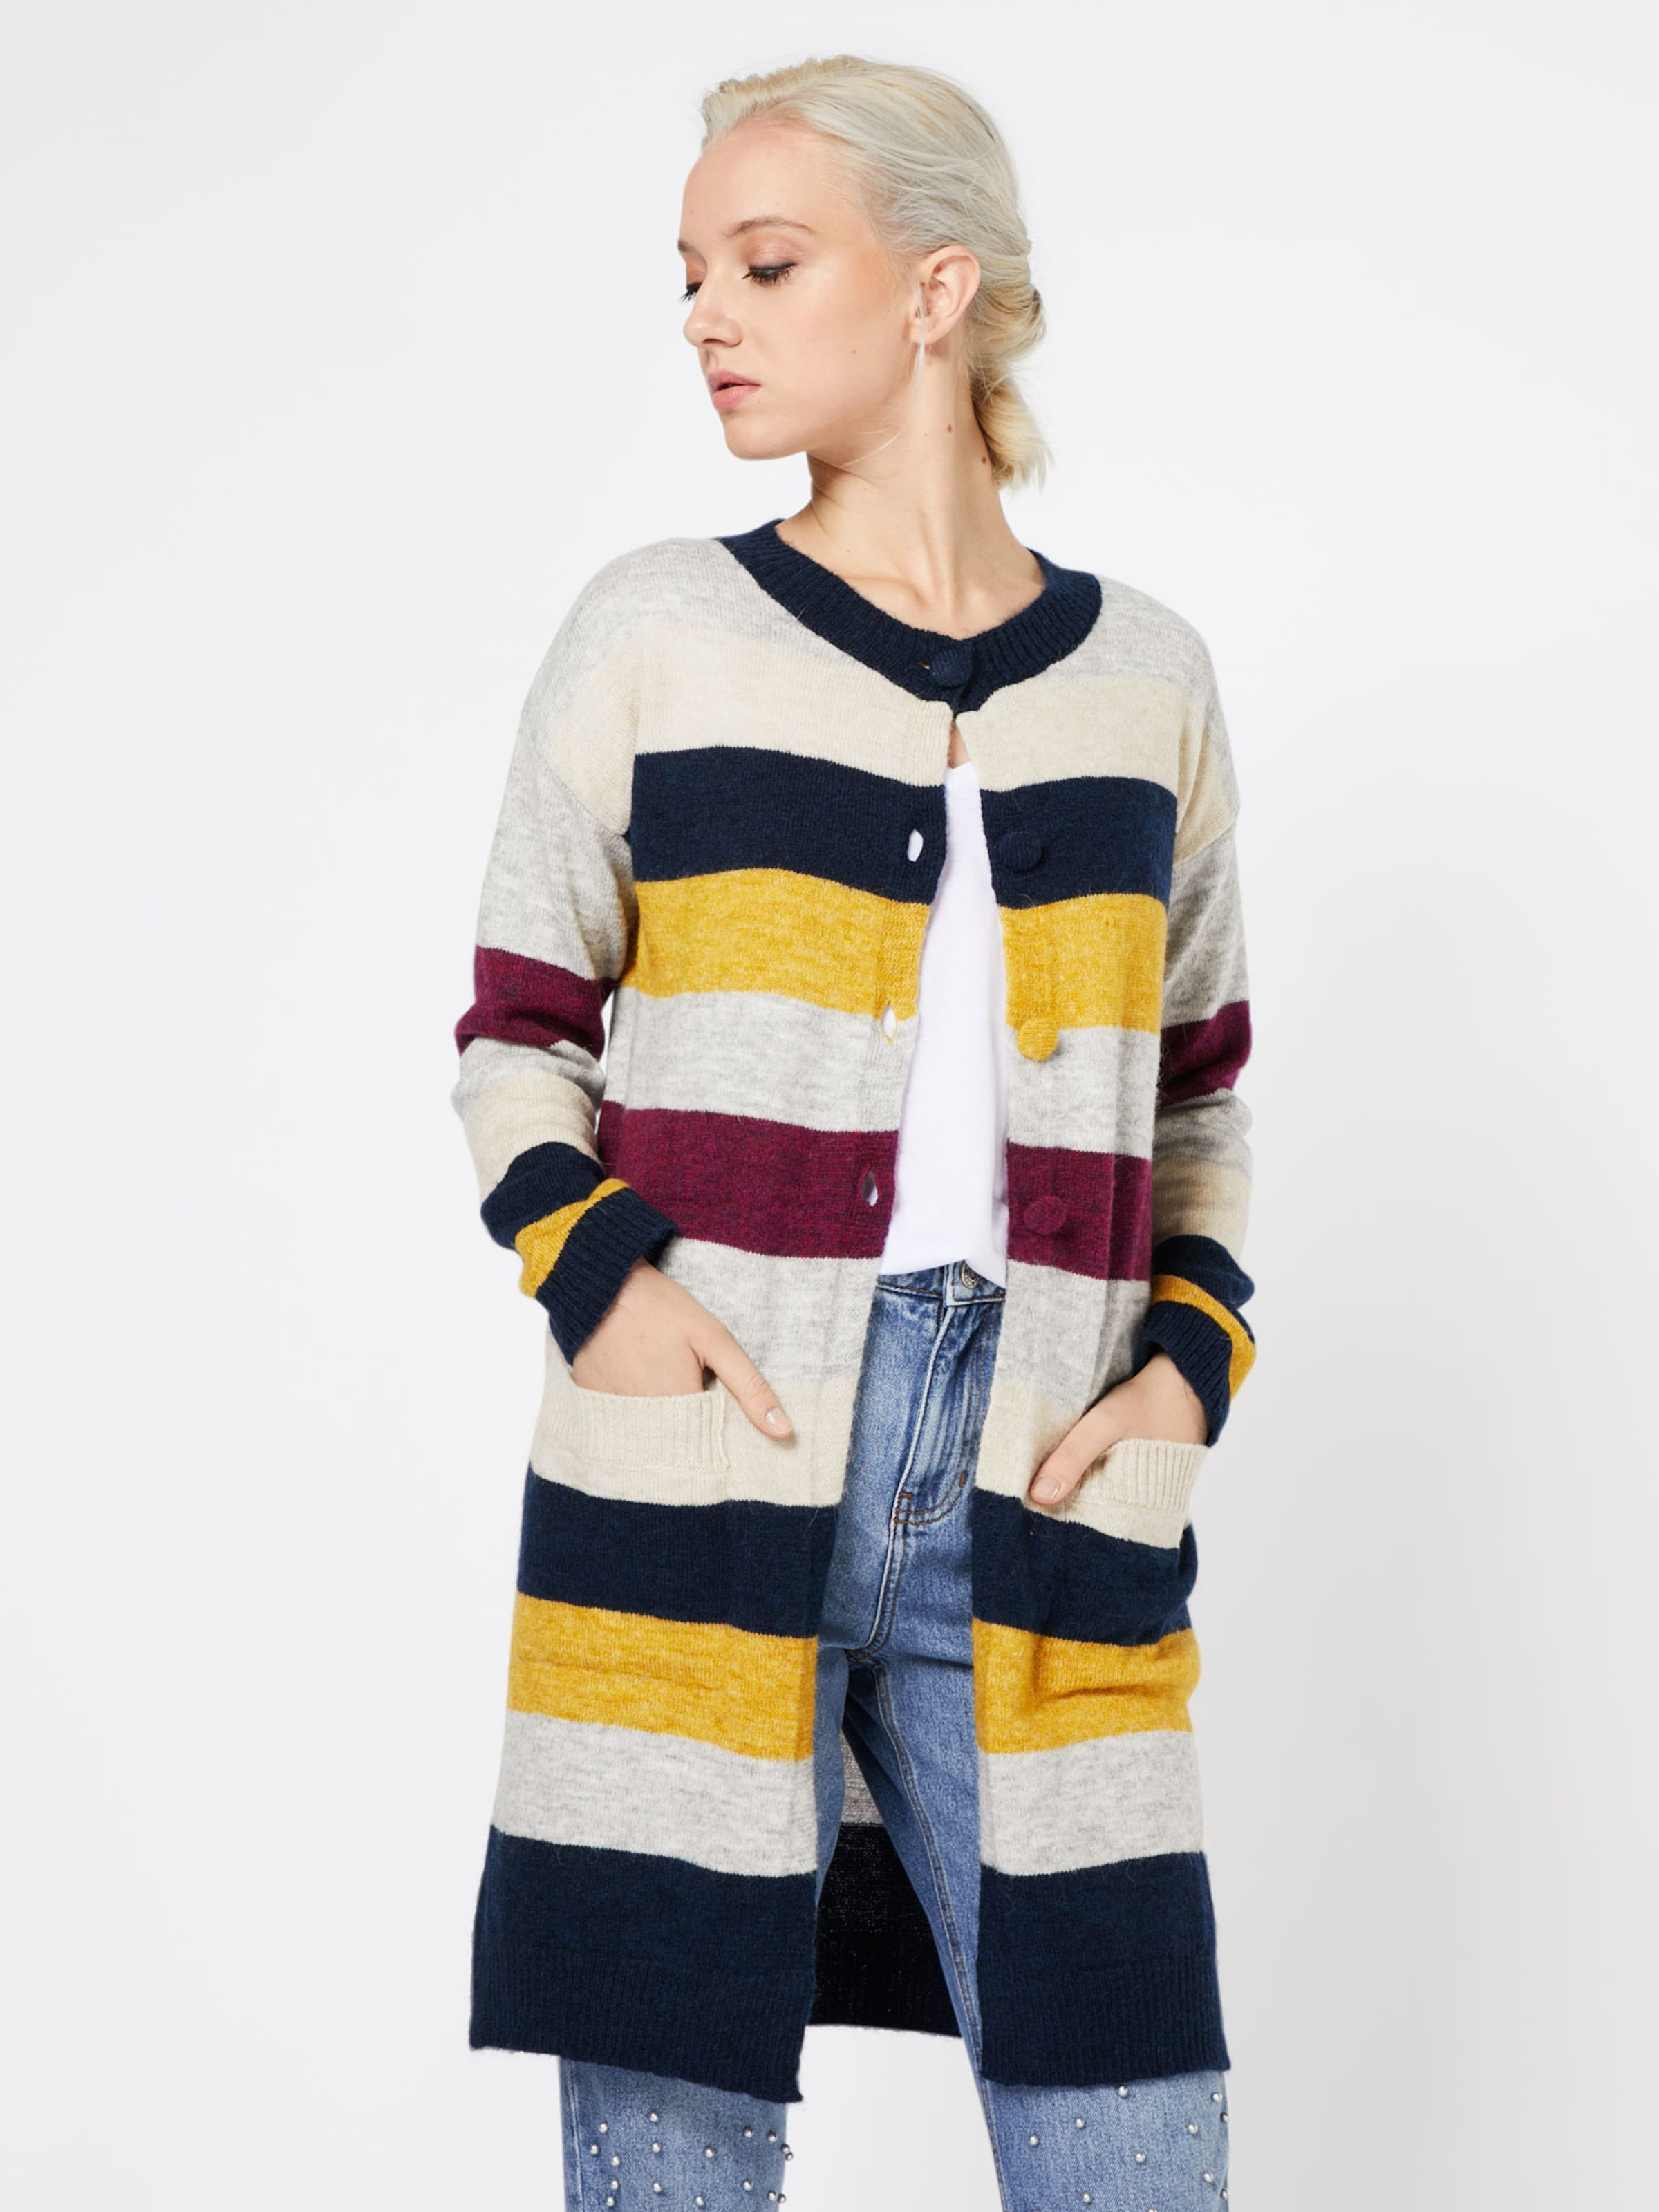 Feinstrickjacke Feinstrickjacke amp; MORE amp; MORE MORE MORE R6fpFYn